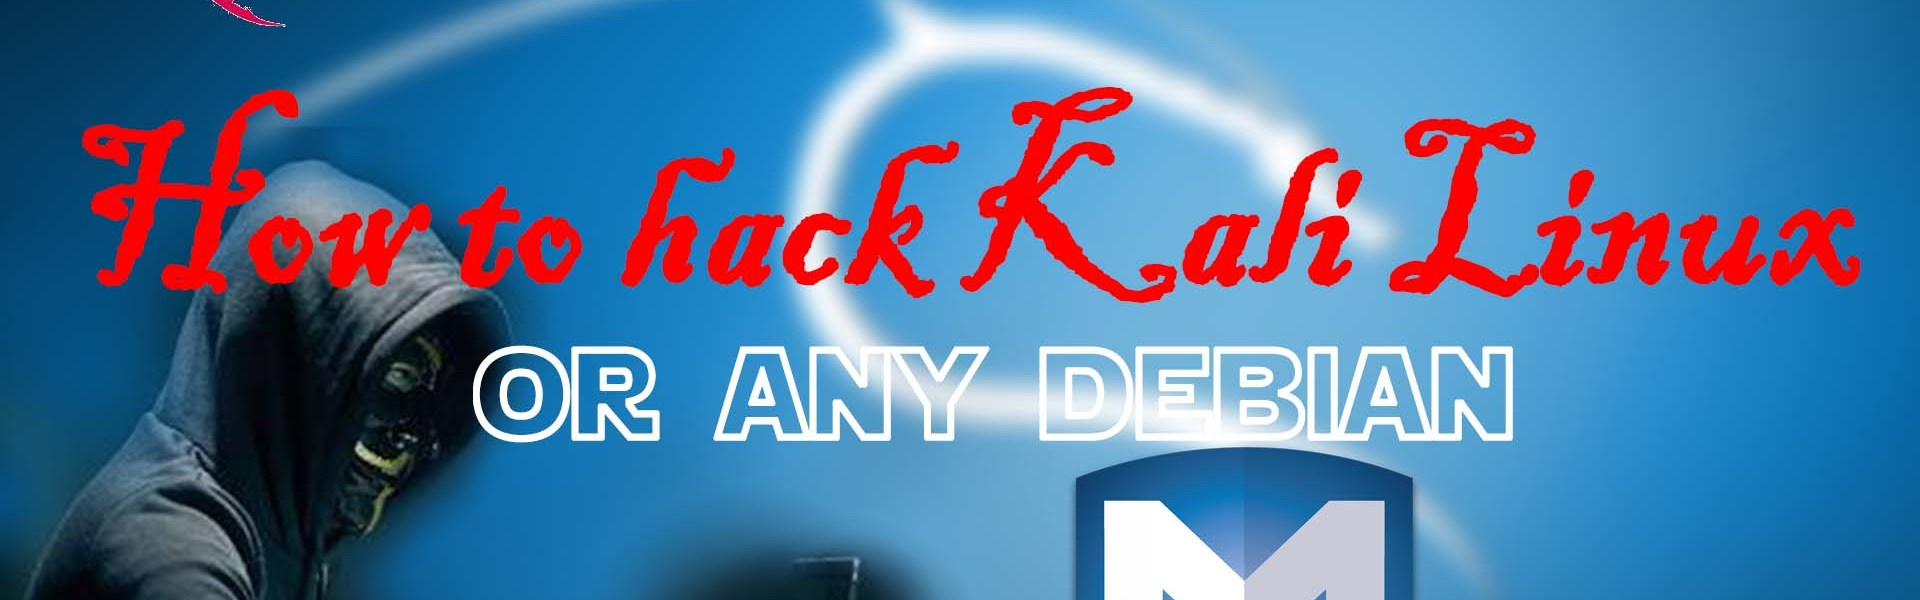 How To Hack The Hacker's OS Kali Linux Using DEBINJECT ?! : Tutorial